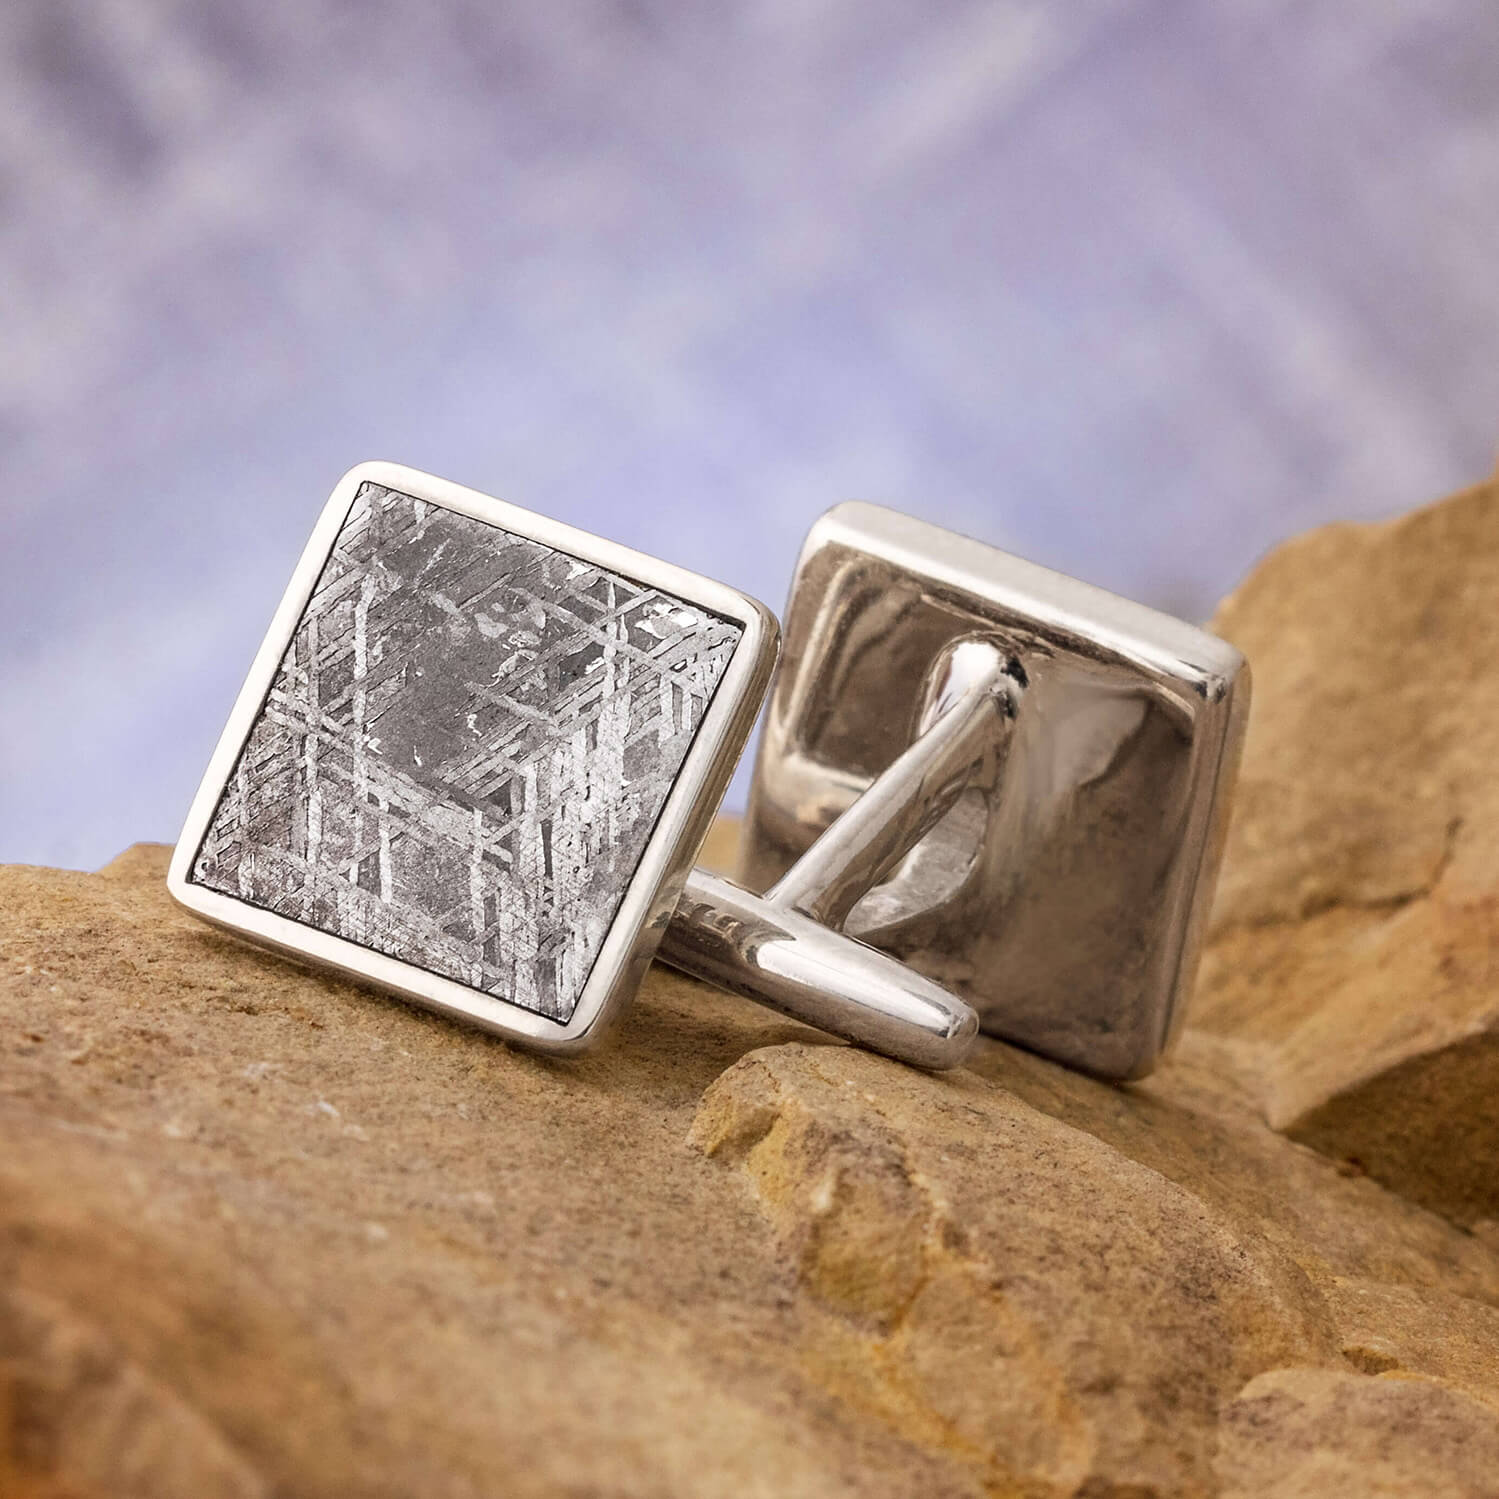 Square Meteorite Cuff Links, In Stock-SIG3055 - Jewelry by Johan